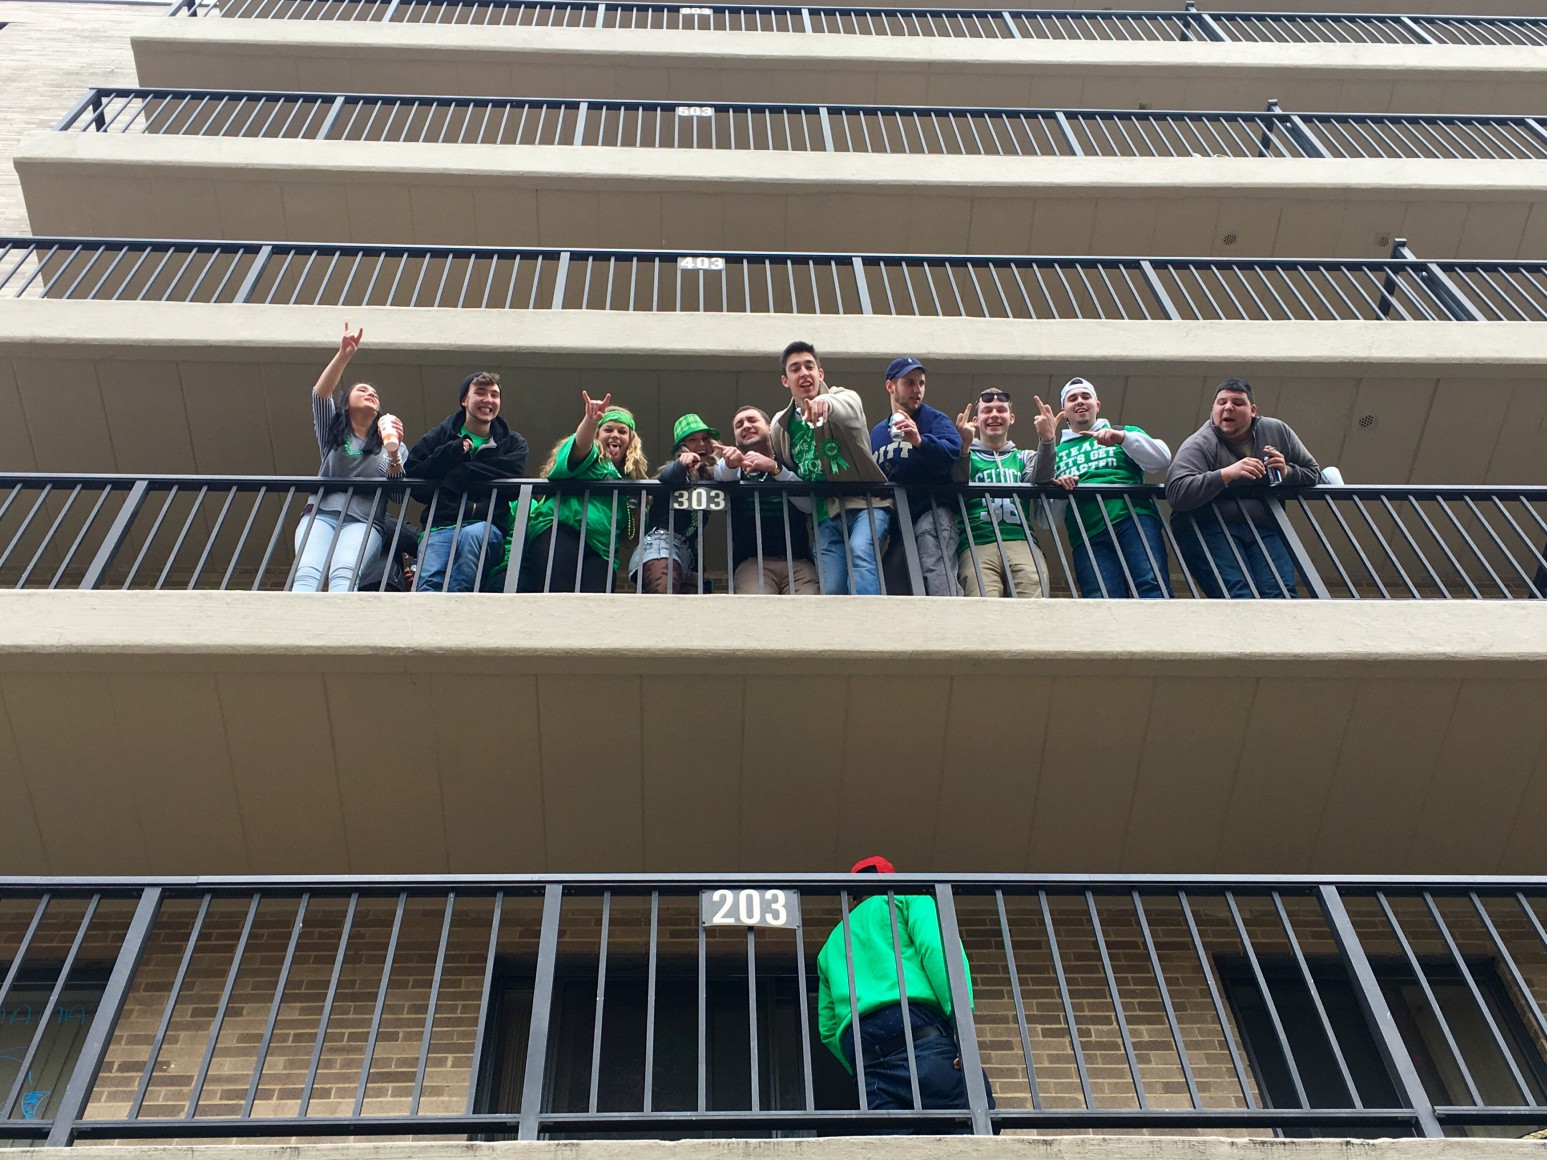 State Patty's Day Balcony Stock